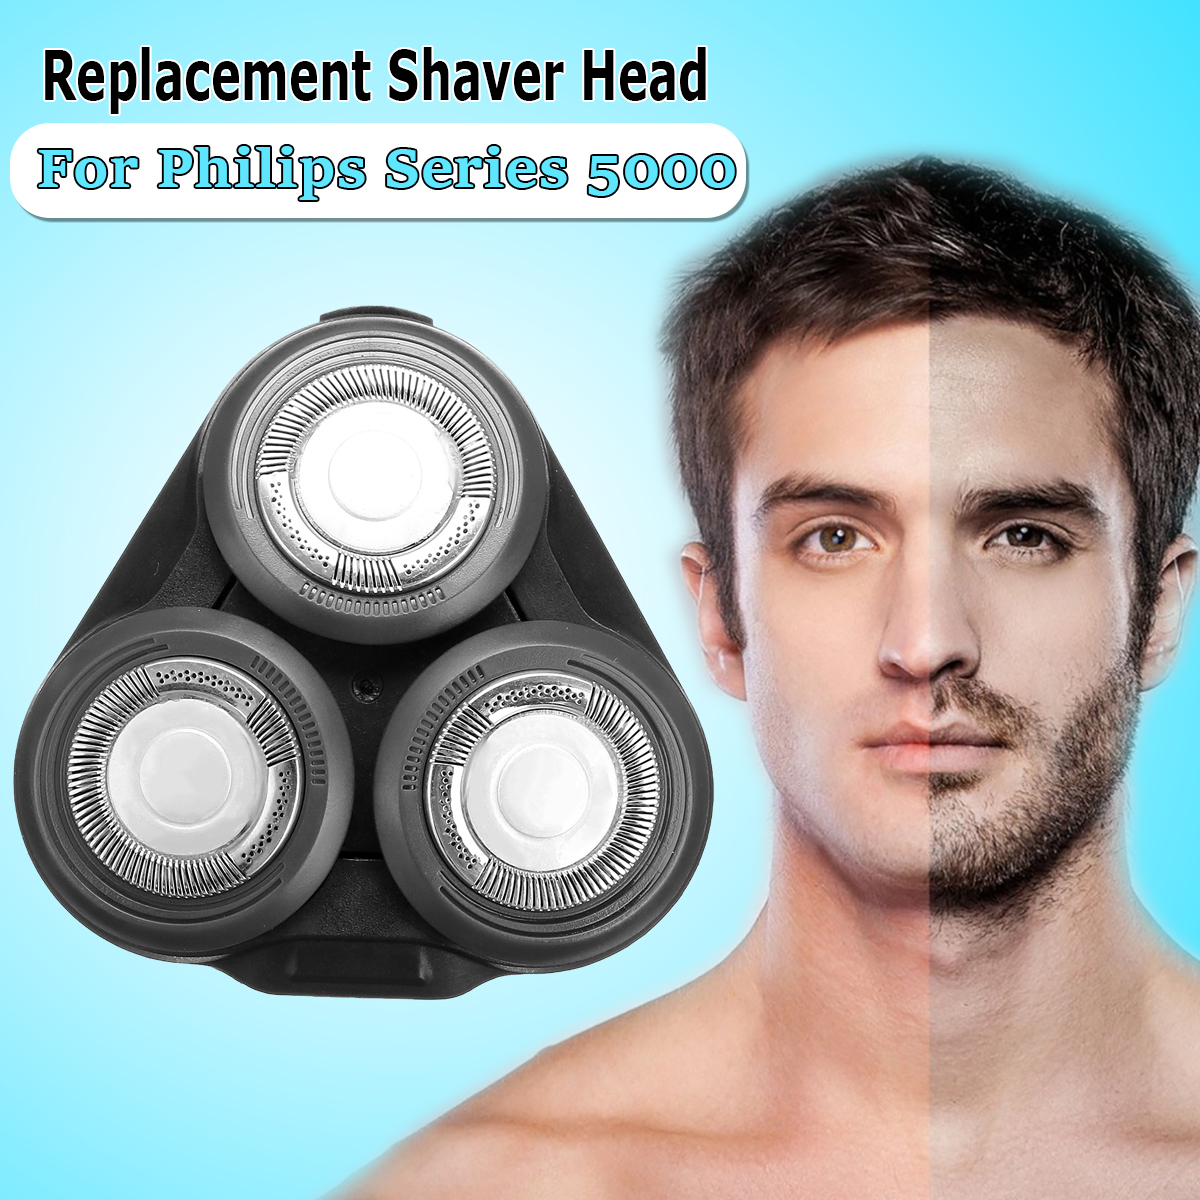 Replacement Shaver Head For Philips Series